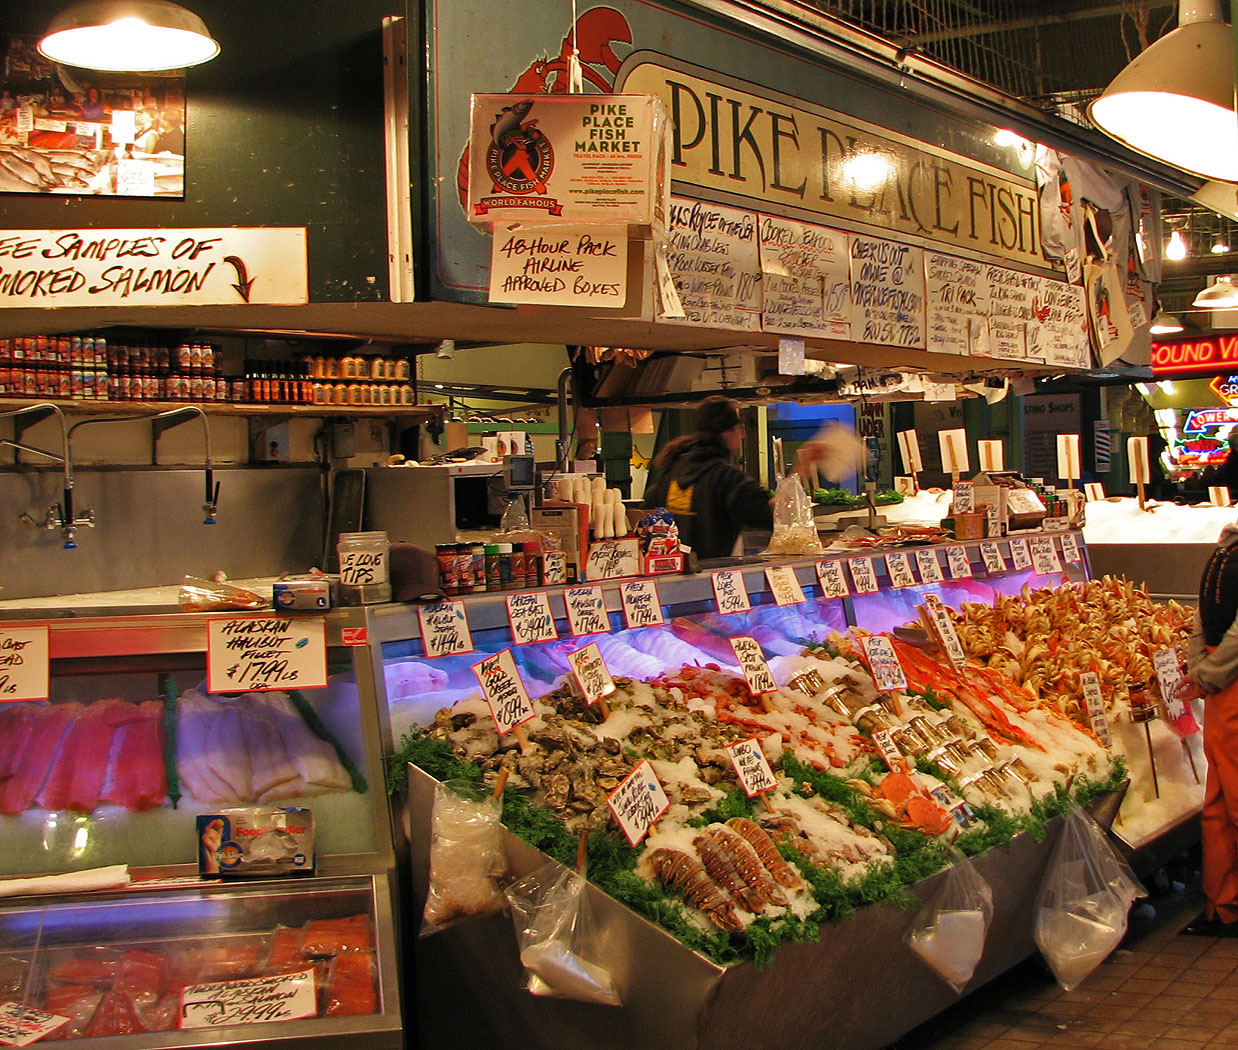 Pike place fish market ashland daily photo for The fish place